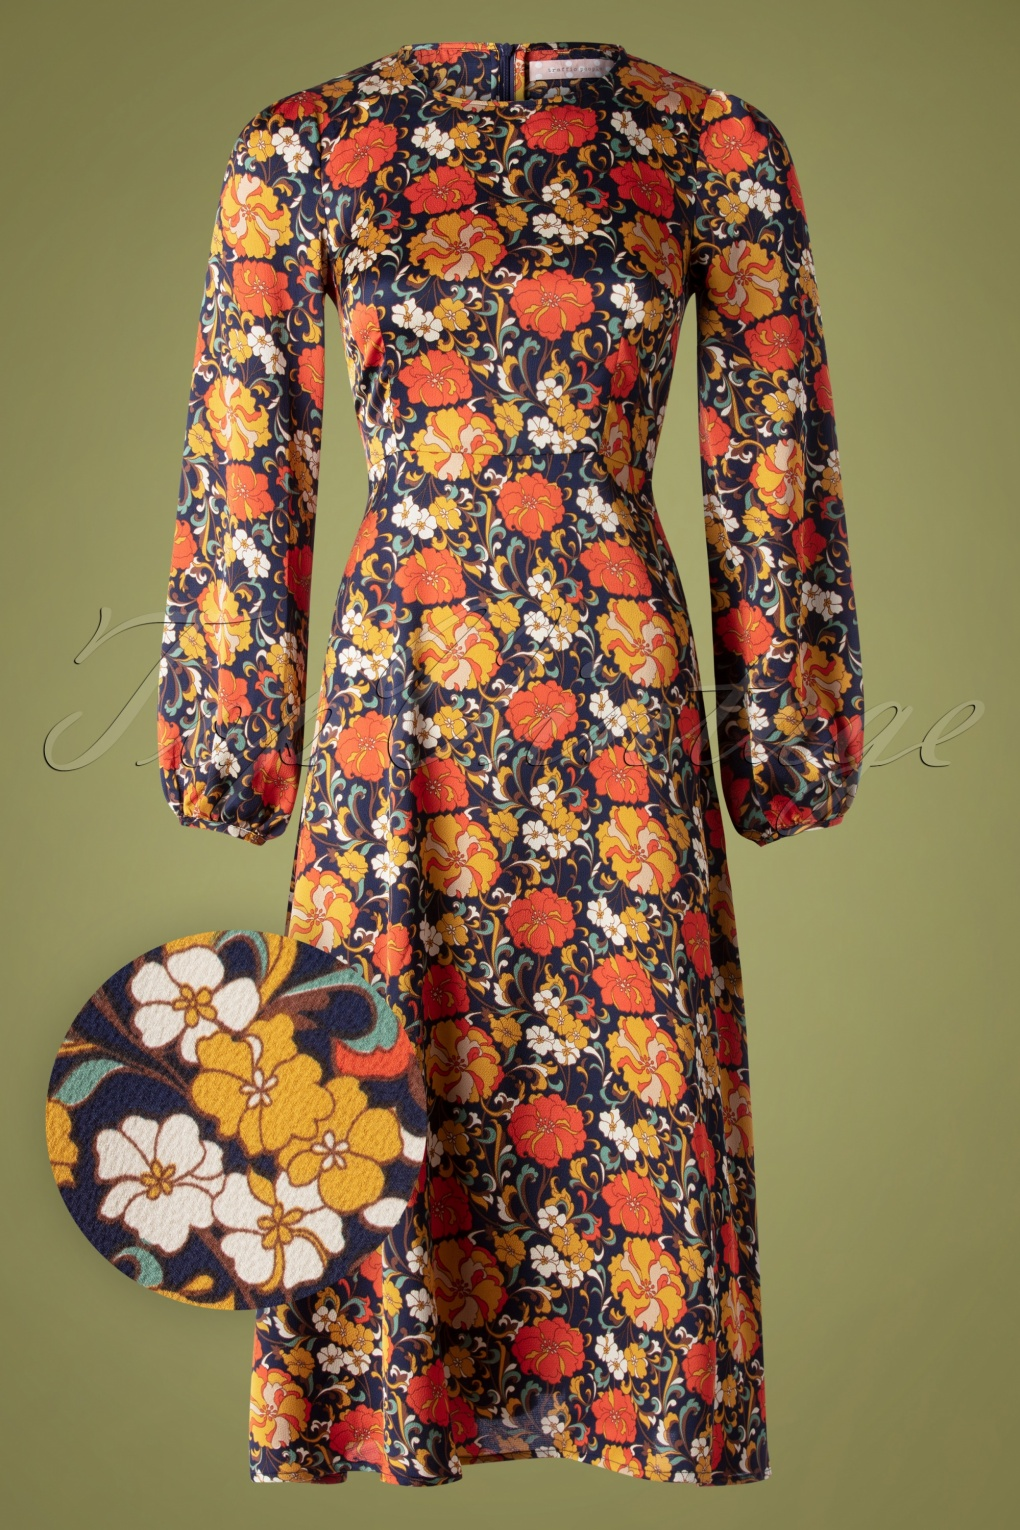 Vintage Inspired Dresses & Clothing UK 70s Moodless Floral Dress in Navy £93.55 AT vintagedancer.com